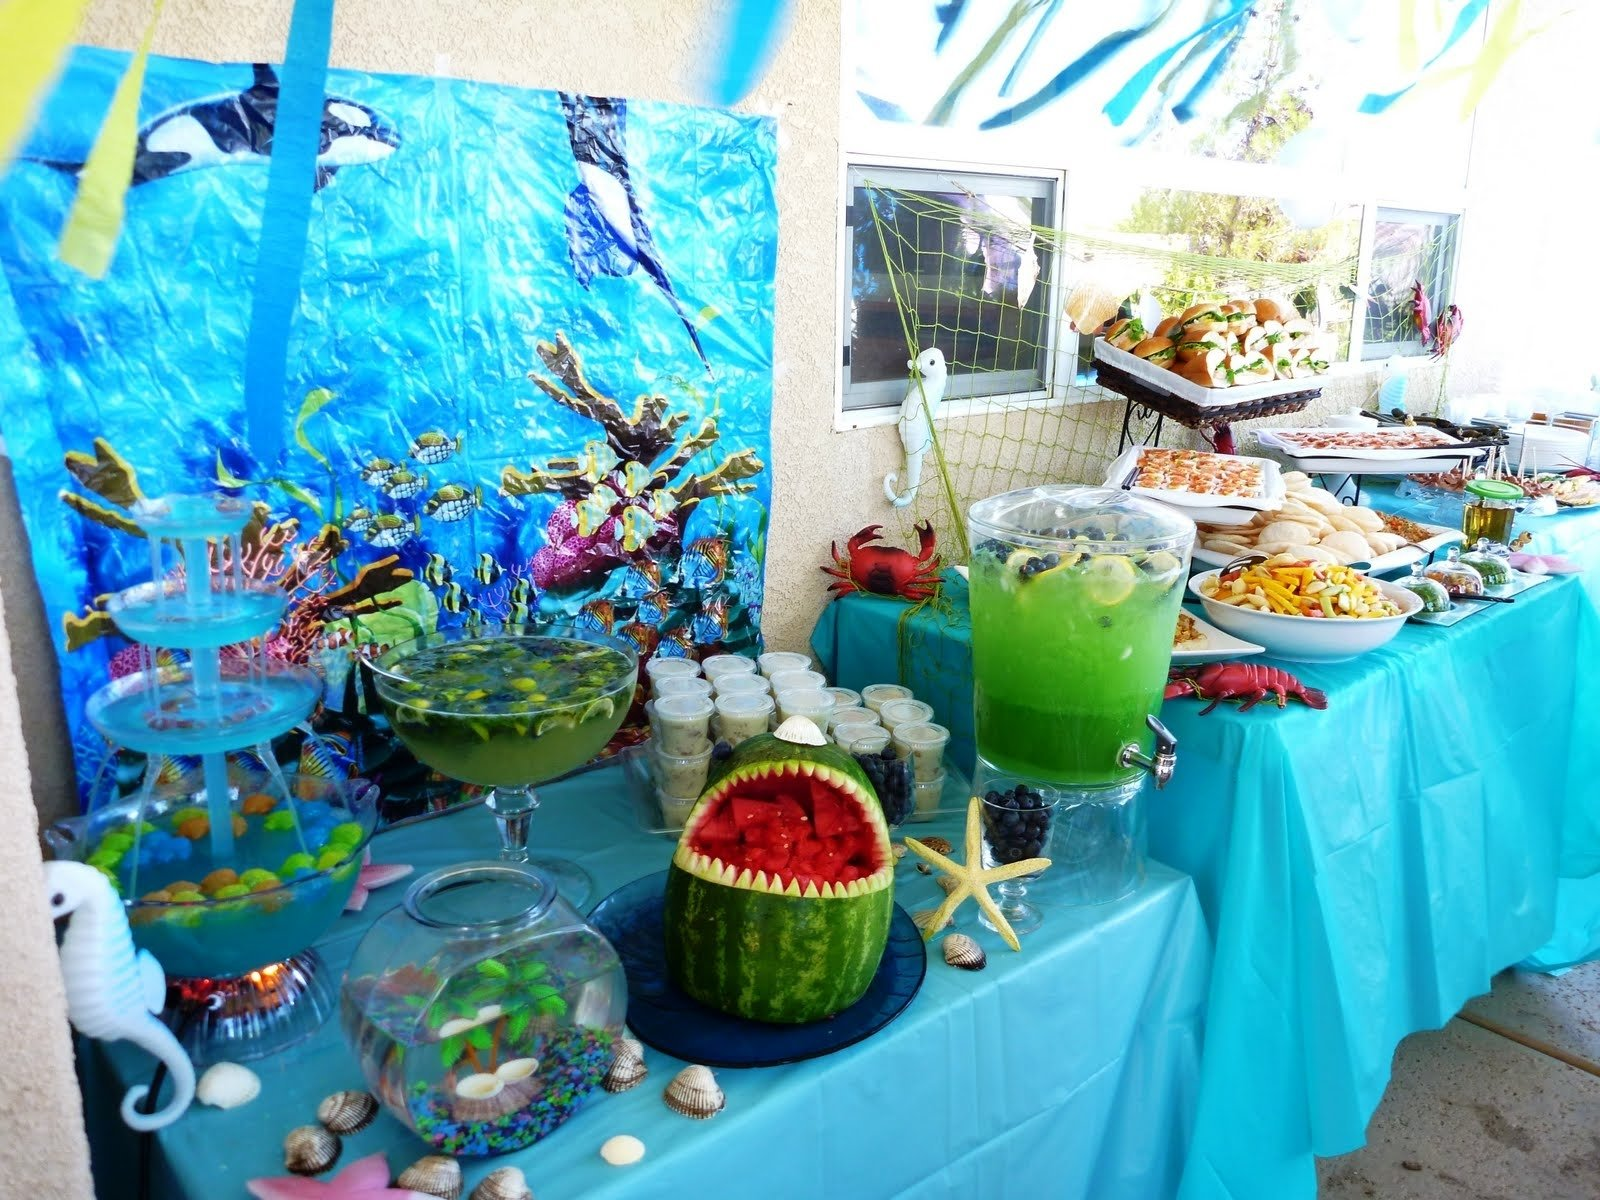 10 Gorgeous Under The Sea Theme Ideas little girl birthday with a under the sea theme reminds of the 2020